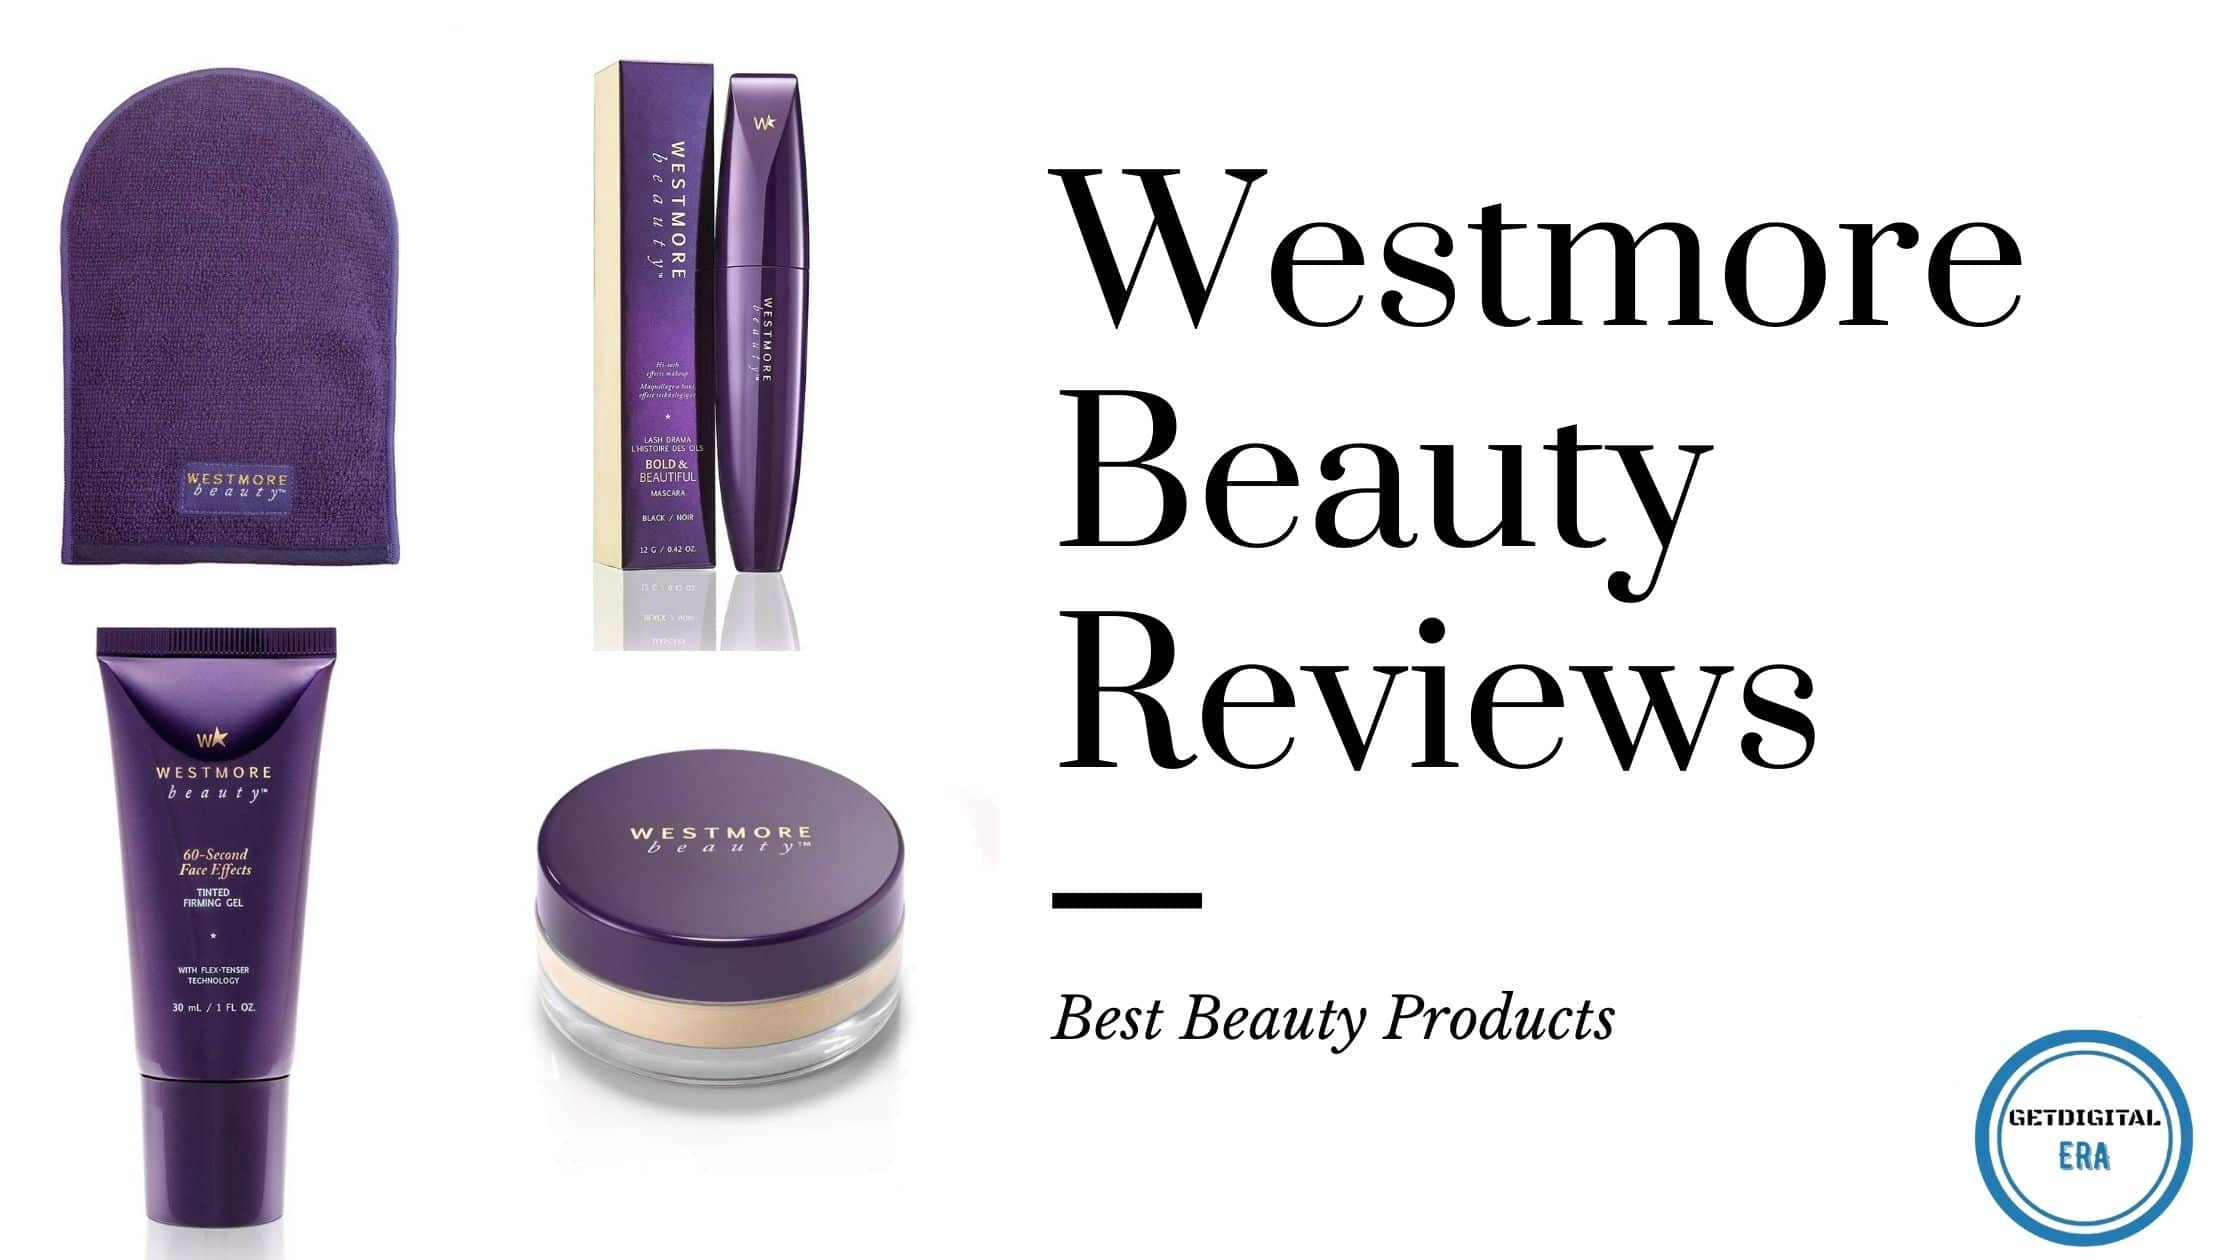 Westmore Beauty Reviews